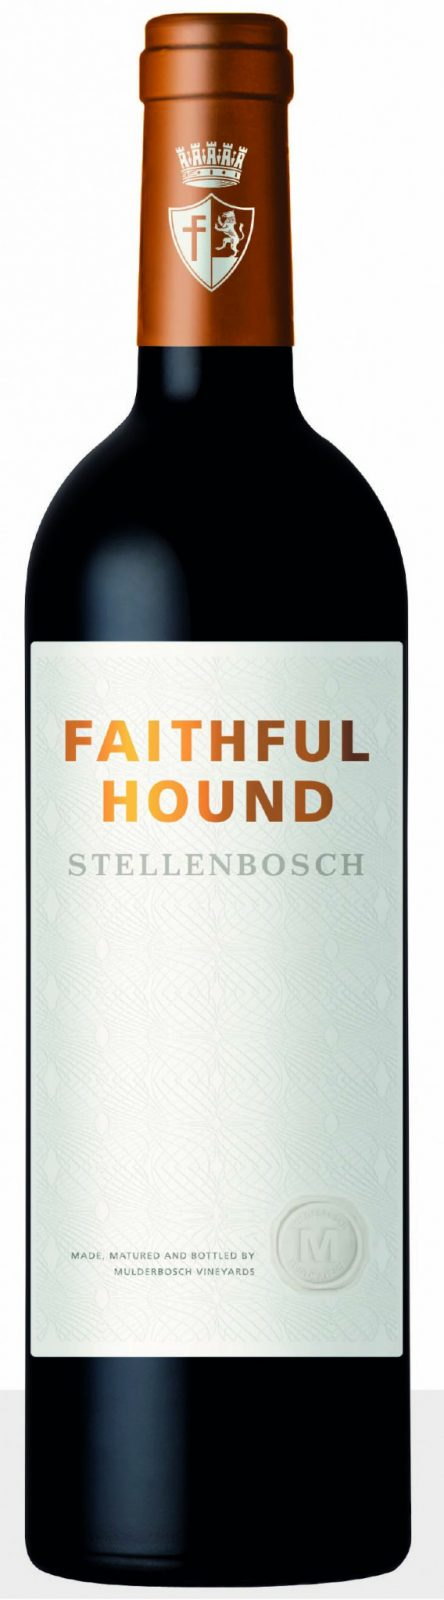 Mulderbosch Faithful Hound - wineaffair